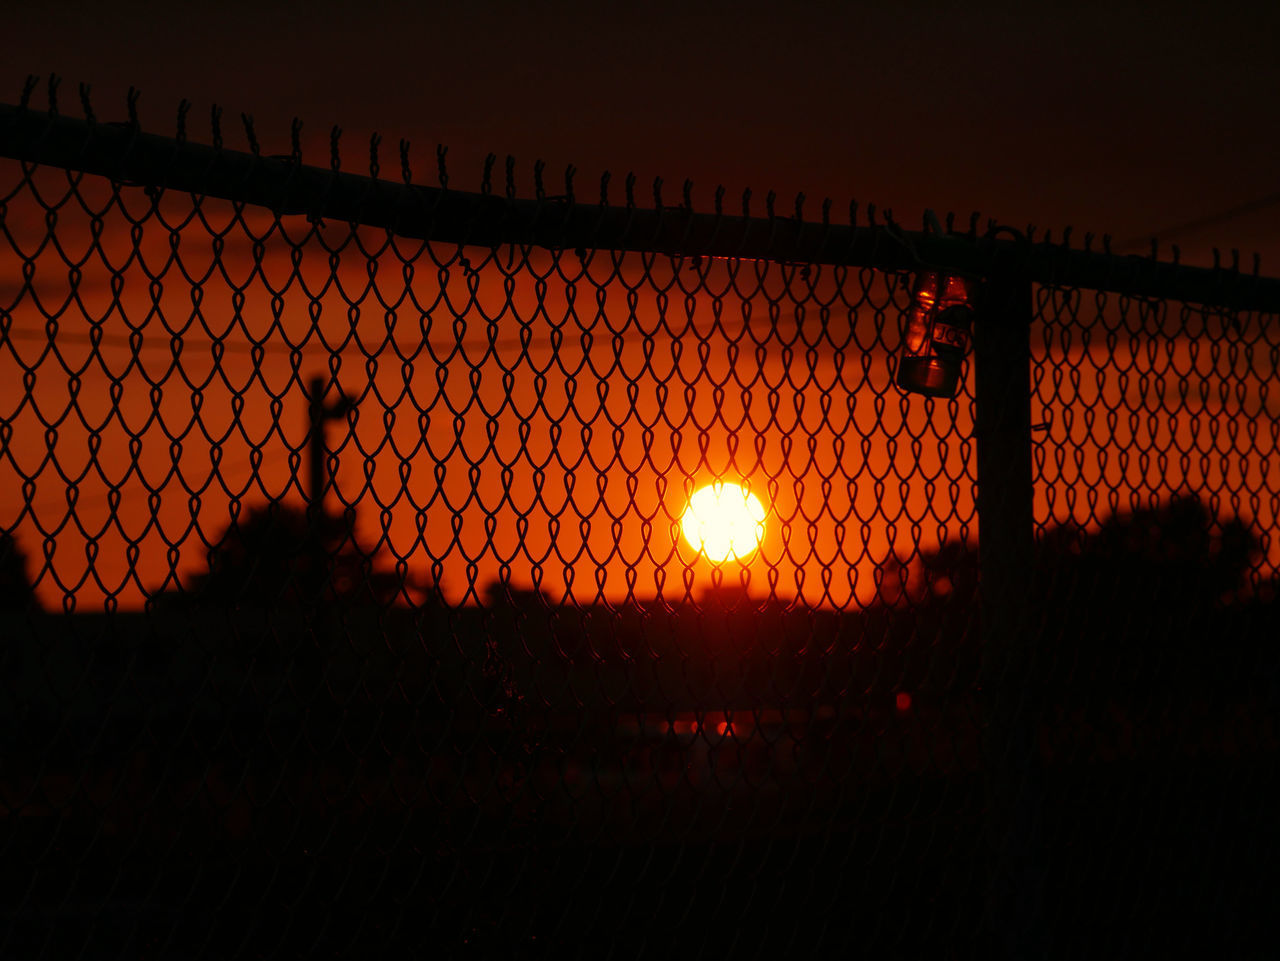 sunset, sky, fence, orange color, barrier, silhouette, nature, boundary, chainlink fence, beauty in nature, sun, glowing, outdoors, illuminated, no people, safety, security, protection, lens flare